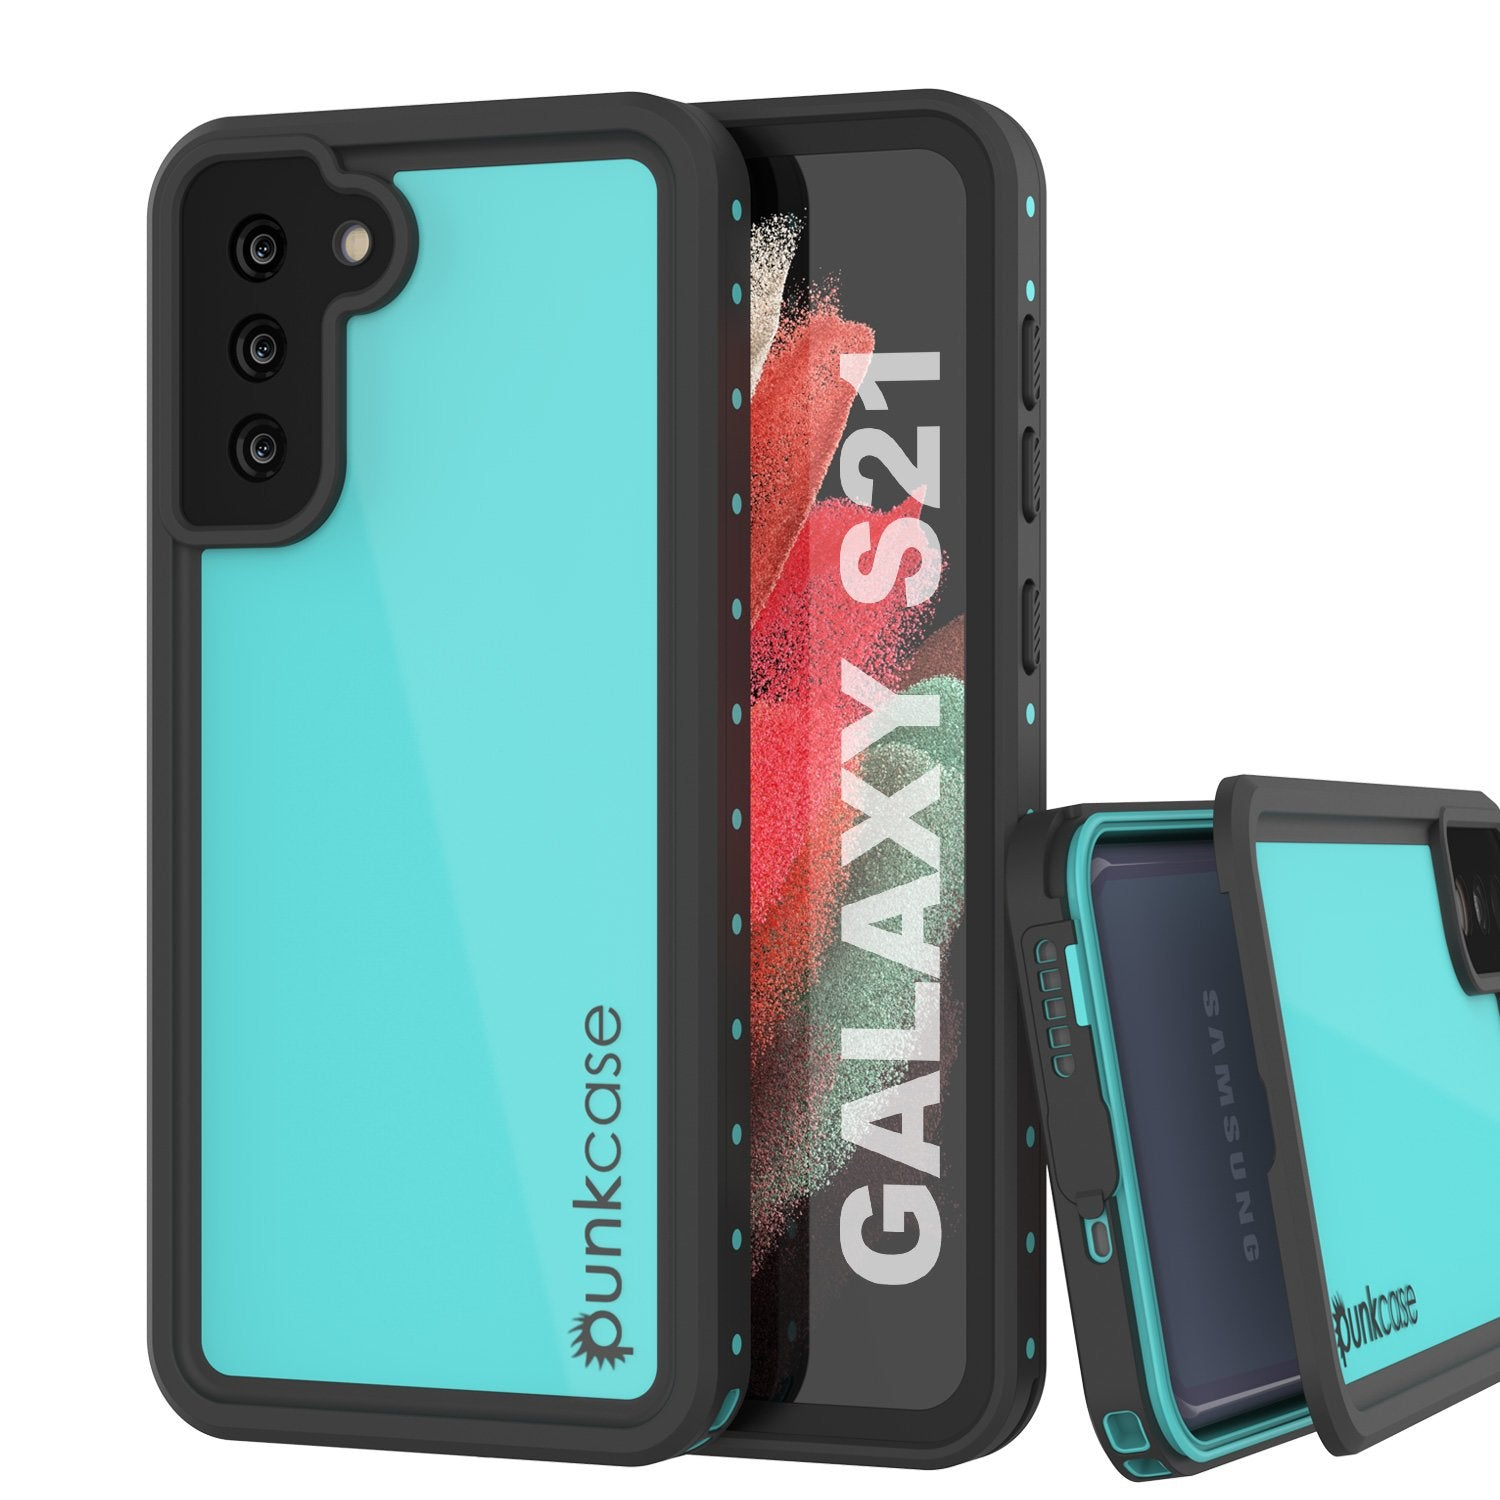 Galaxy S21 Waterproof Case PunkCase StudStar Teal Thin 6.6ft Underwater IP68 Shock/Snow Proof